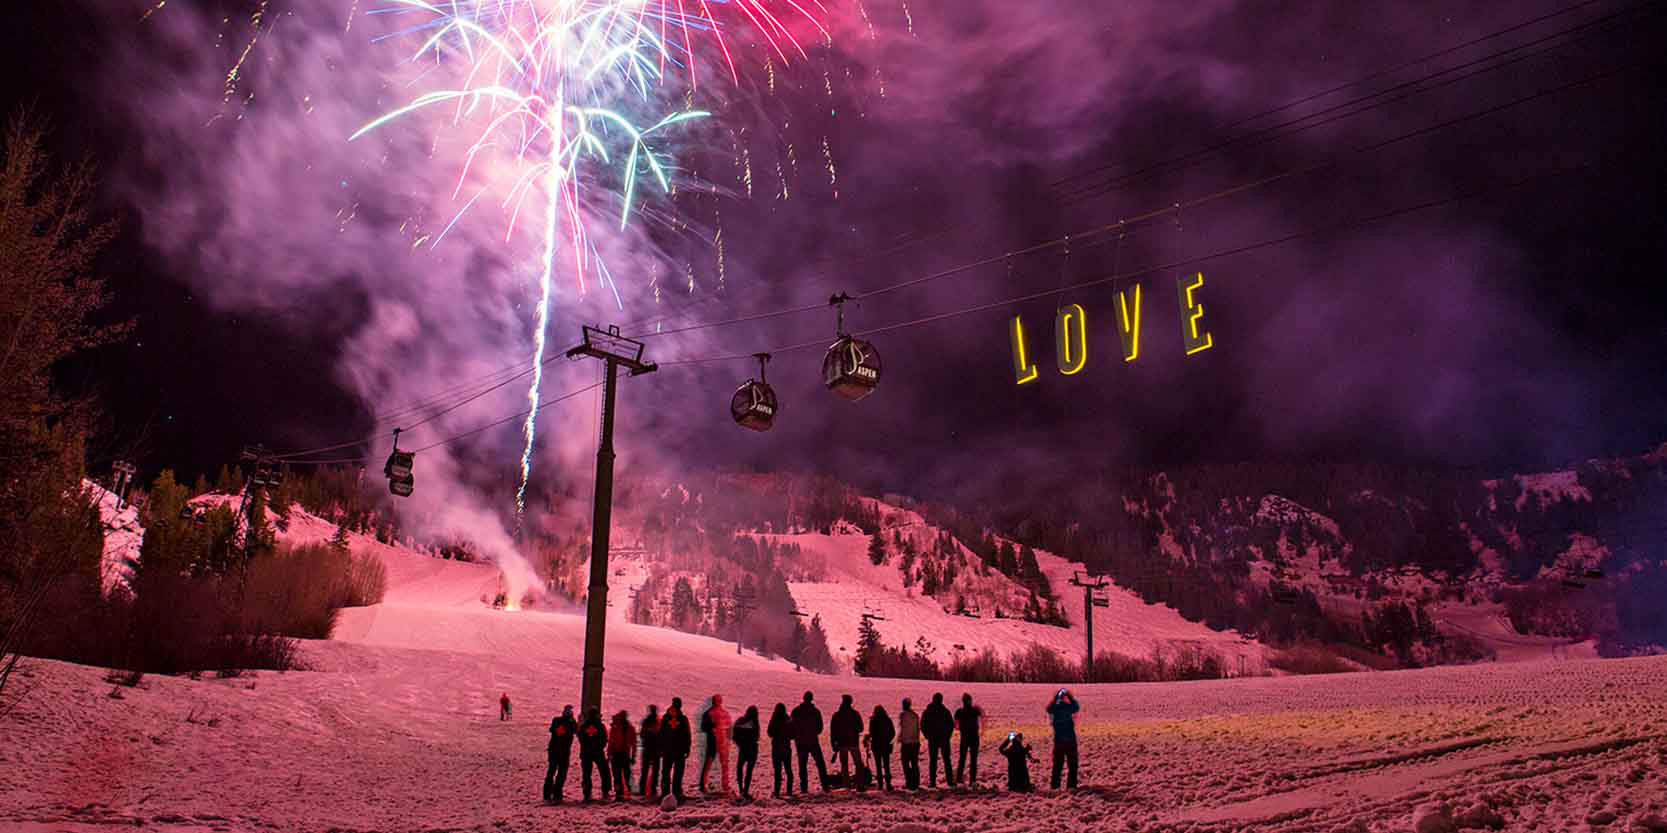 Many skiers at the bottom of the slope at night. Fireworks illuminate the sky and a sculpture hangs from the ski lift and says LOVE.